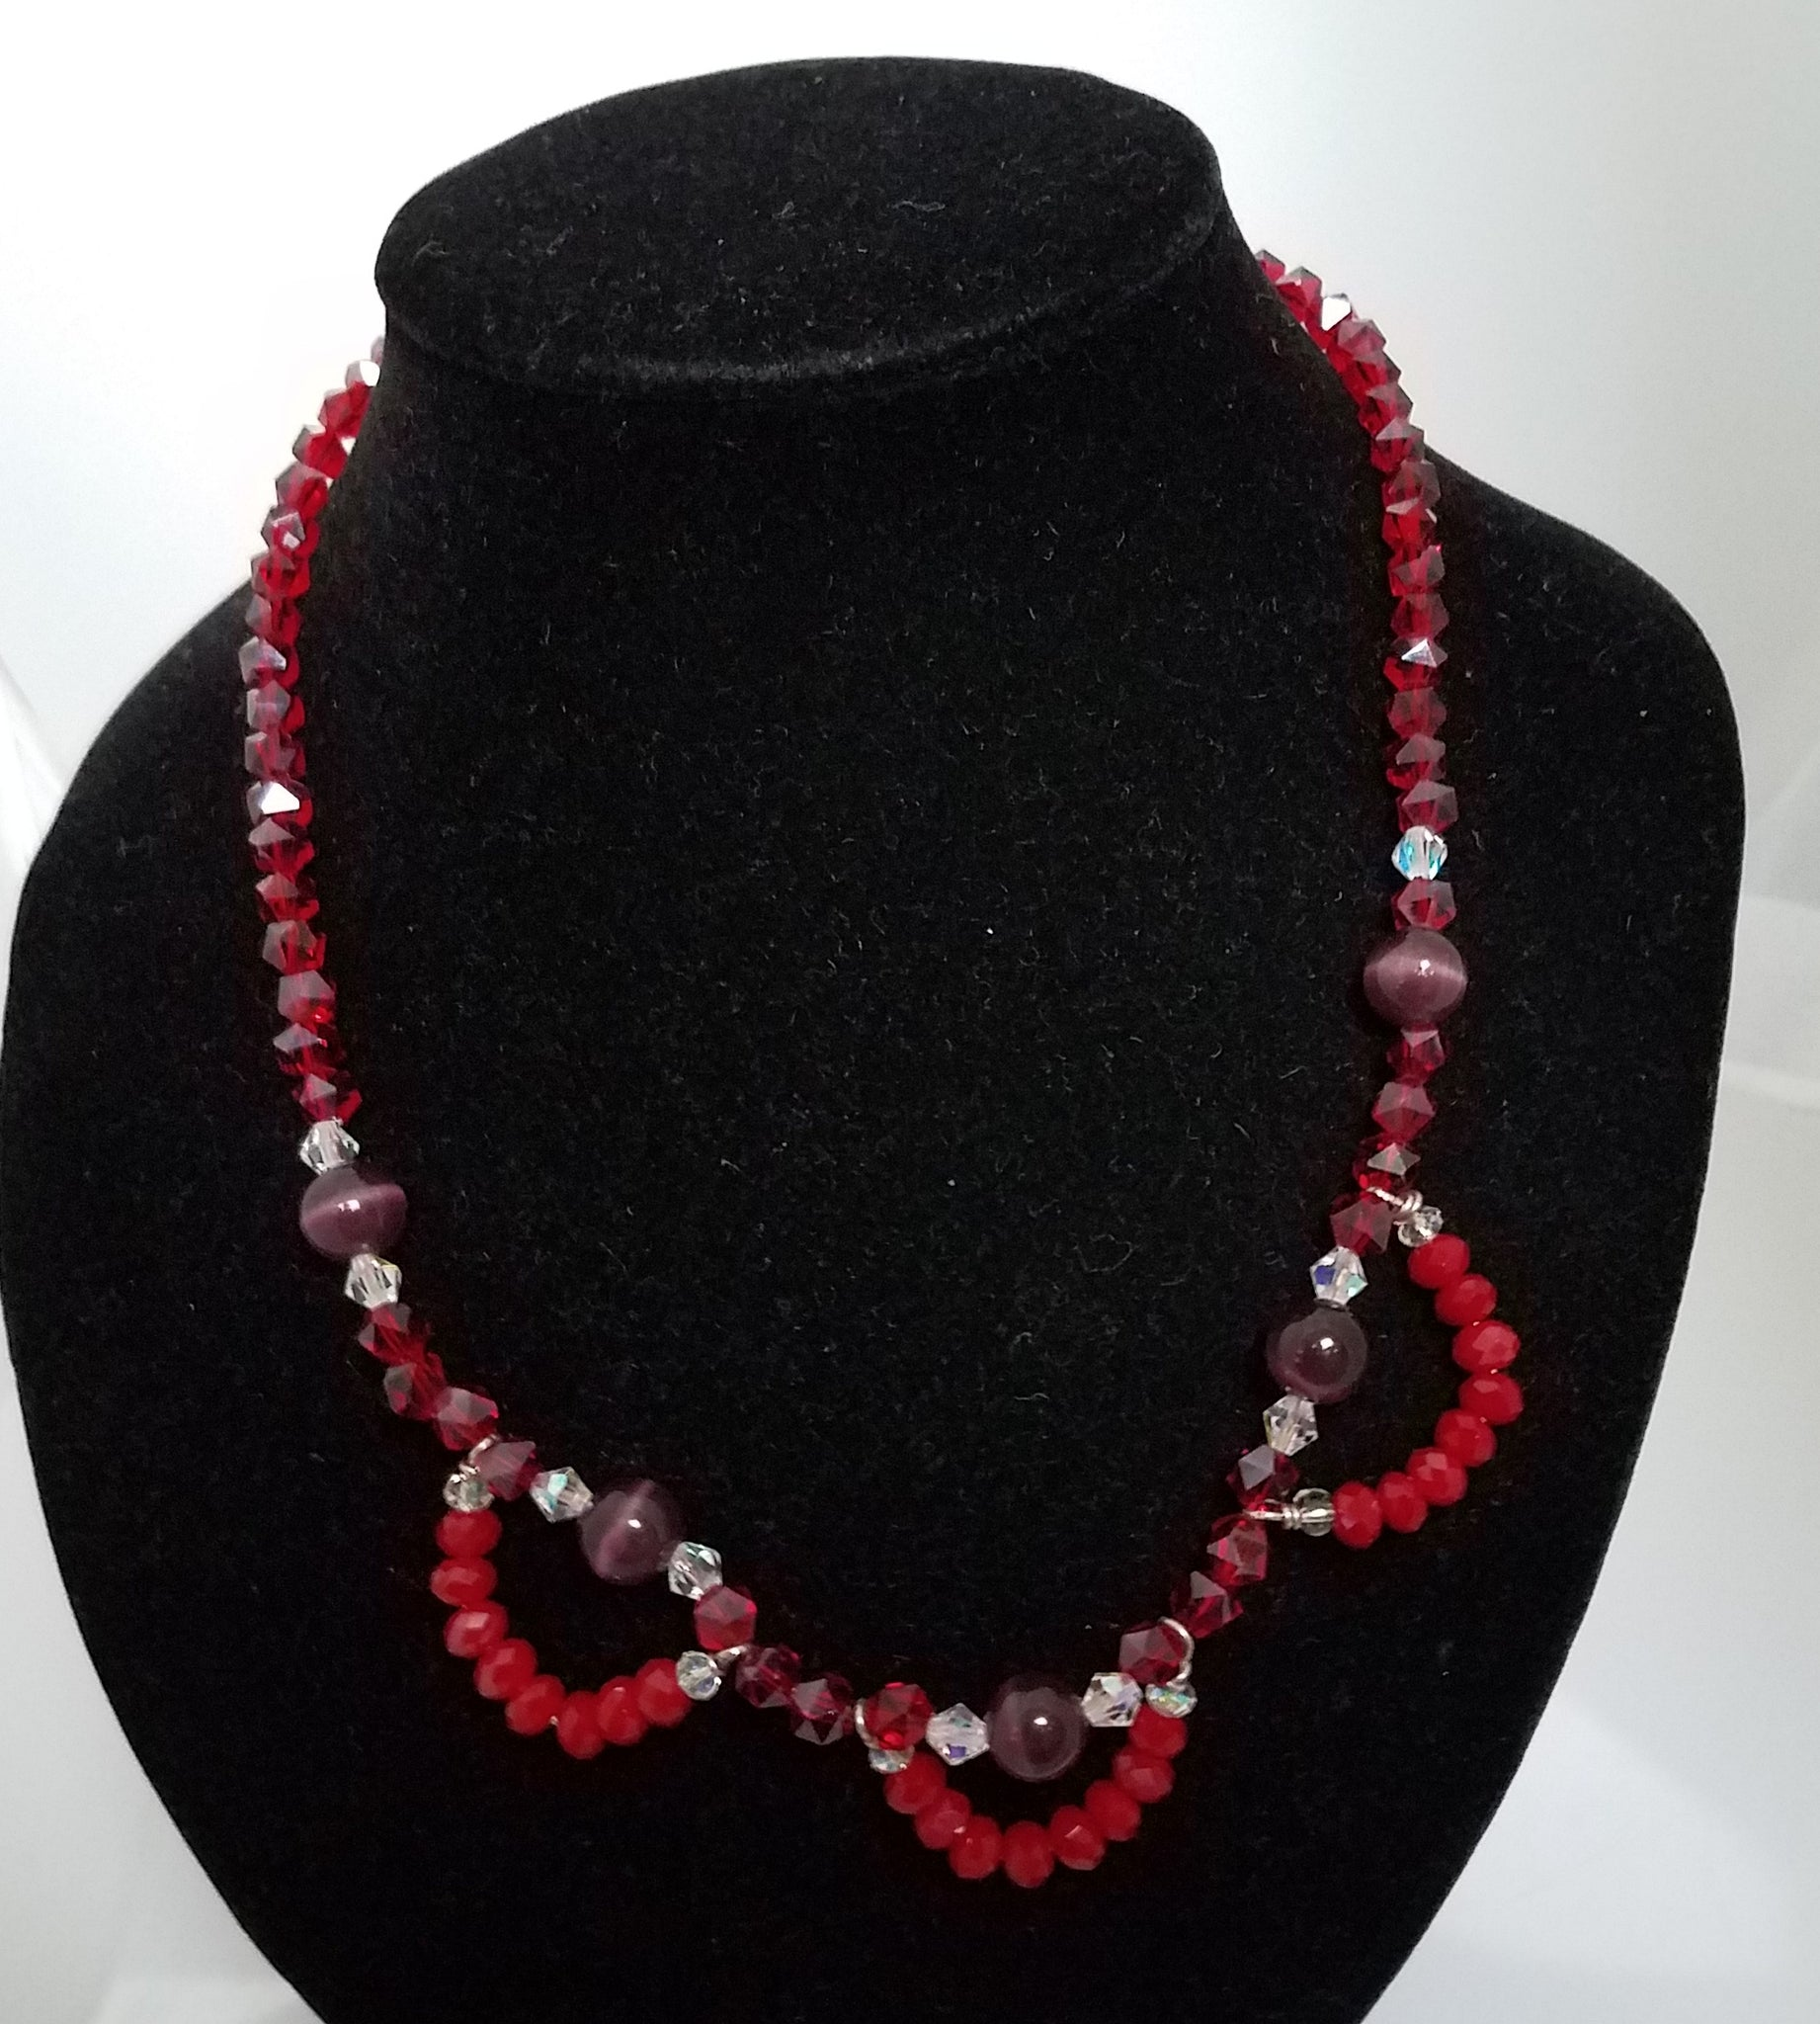 Regal Necklace - D-Nadz Jewelry